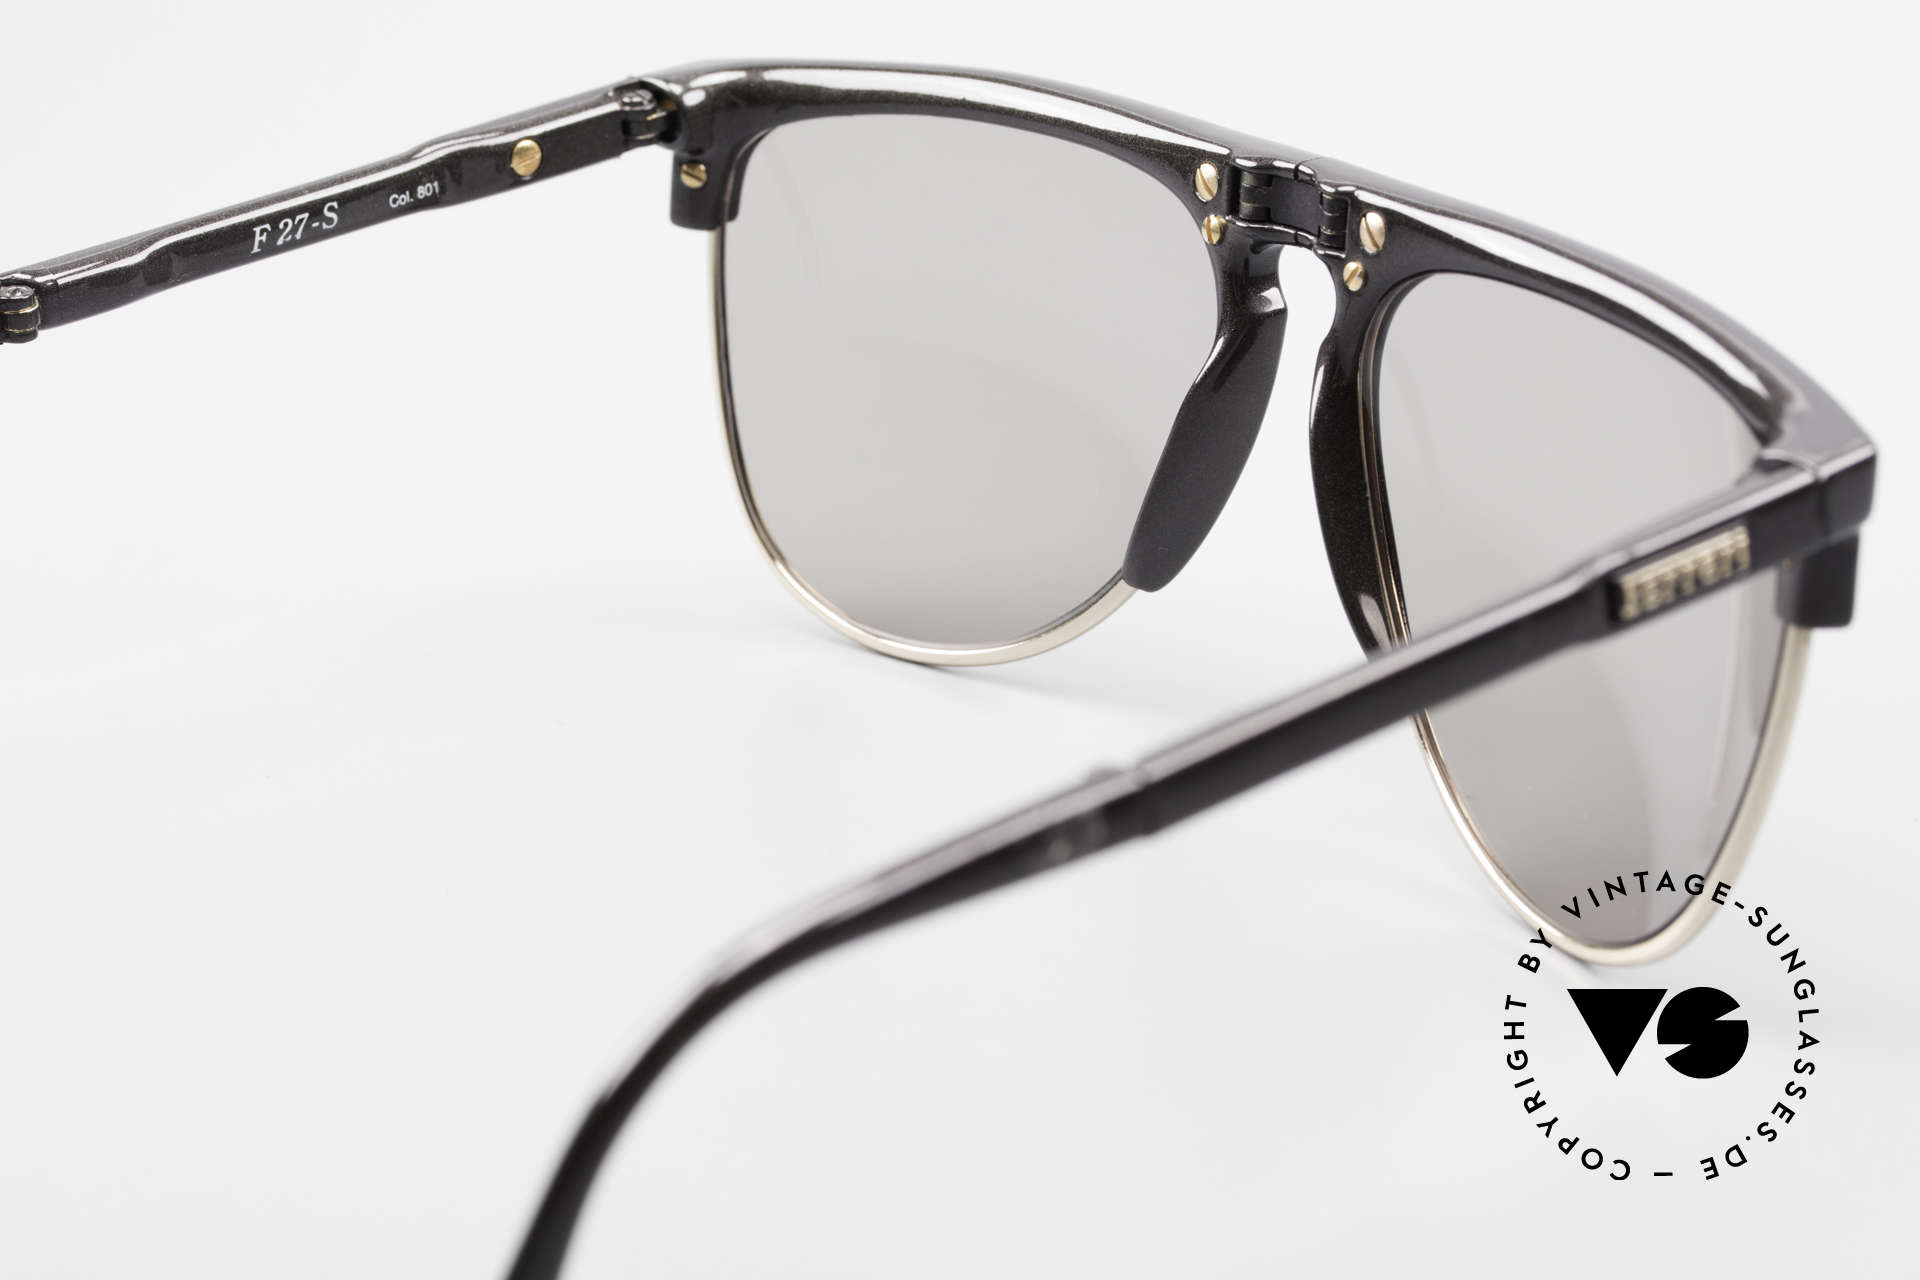 Ferrari F27/S Carbonio Folding Shades 90's, NO RETRO shades; an old 90's rarity with orig. case, Made for Men